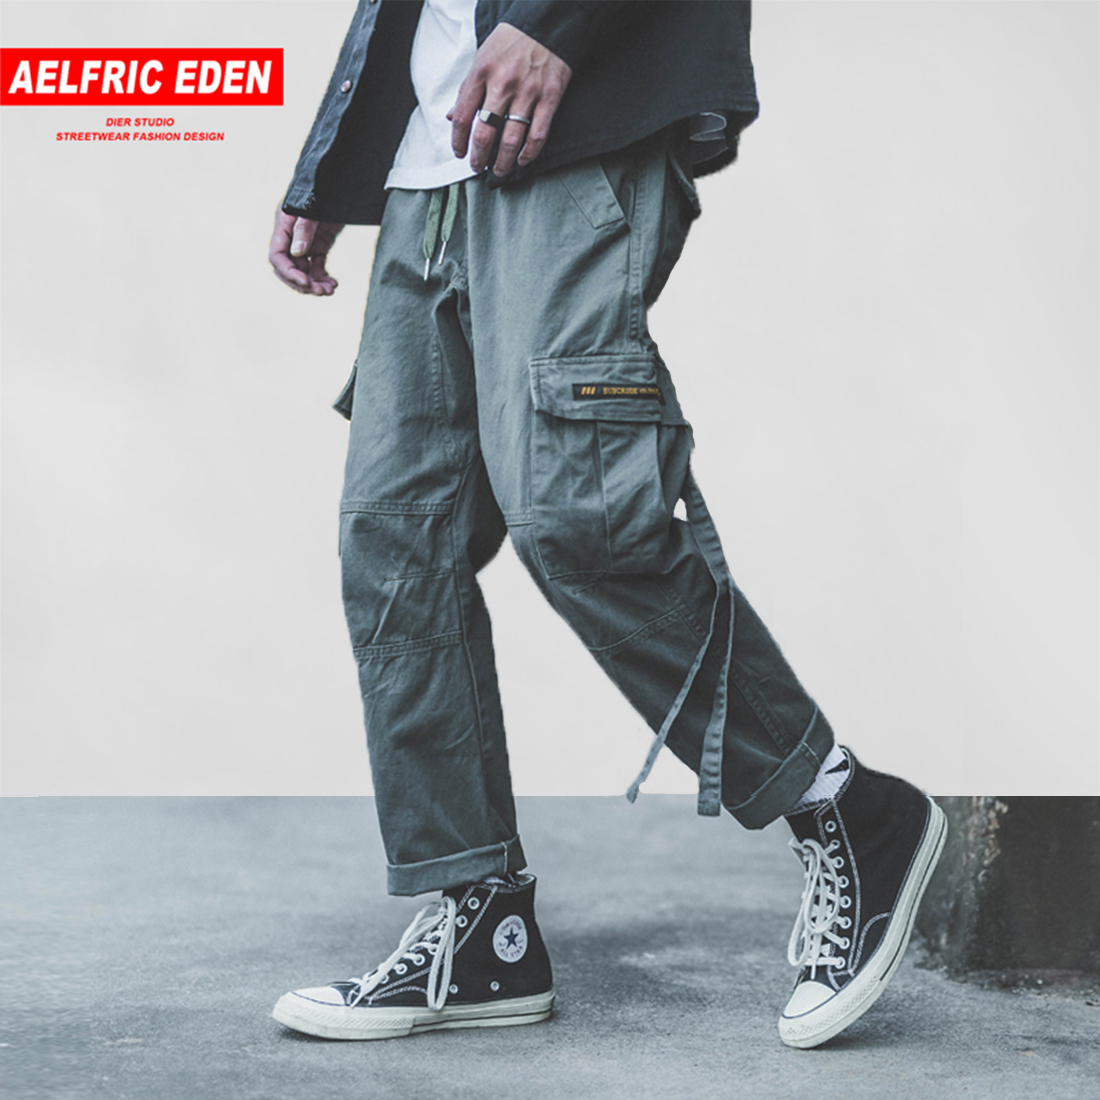 2019 New Style Aelfric Eden New Design 2018 Autumn Harajuku Mens Pants Hip Hop Casual Multi Pockets Fashion Joggers Patchwork Streetwear B054 Selected Material